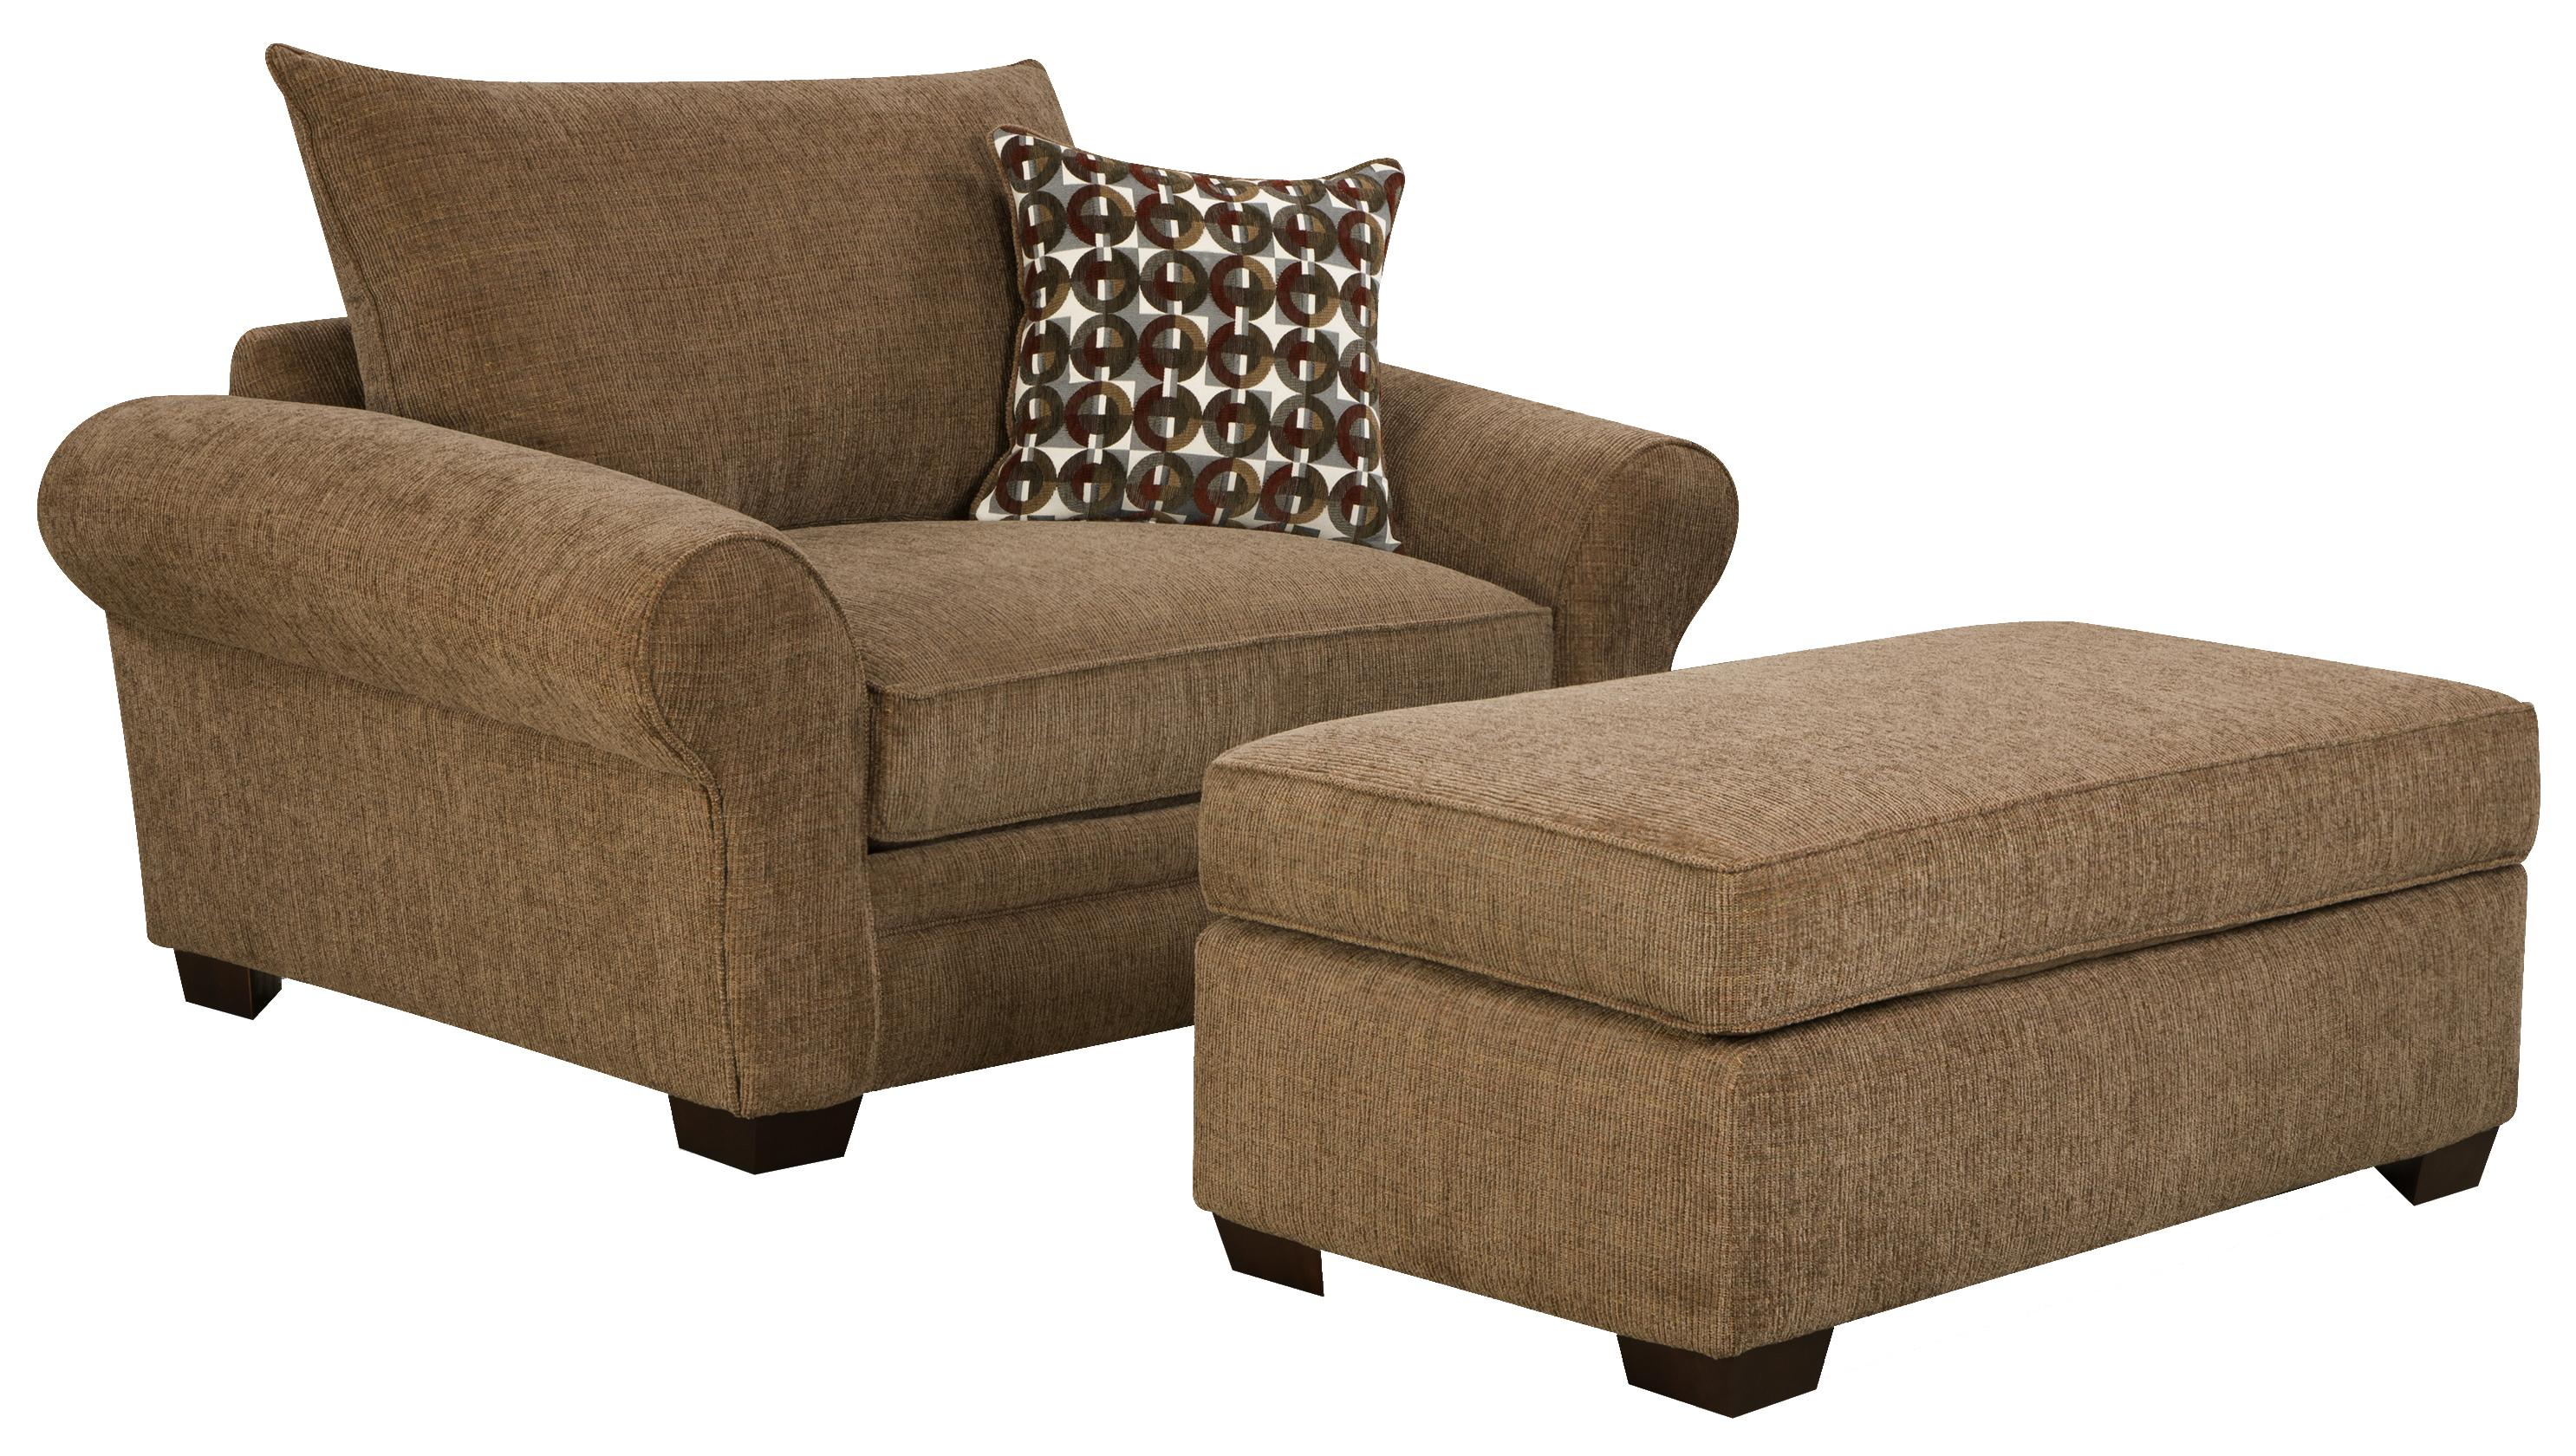 Extra Chair and a Half & Ottoman Set for Casual Styled